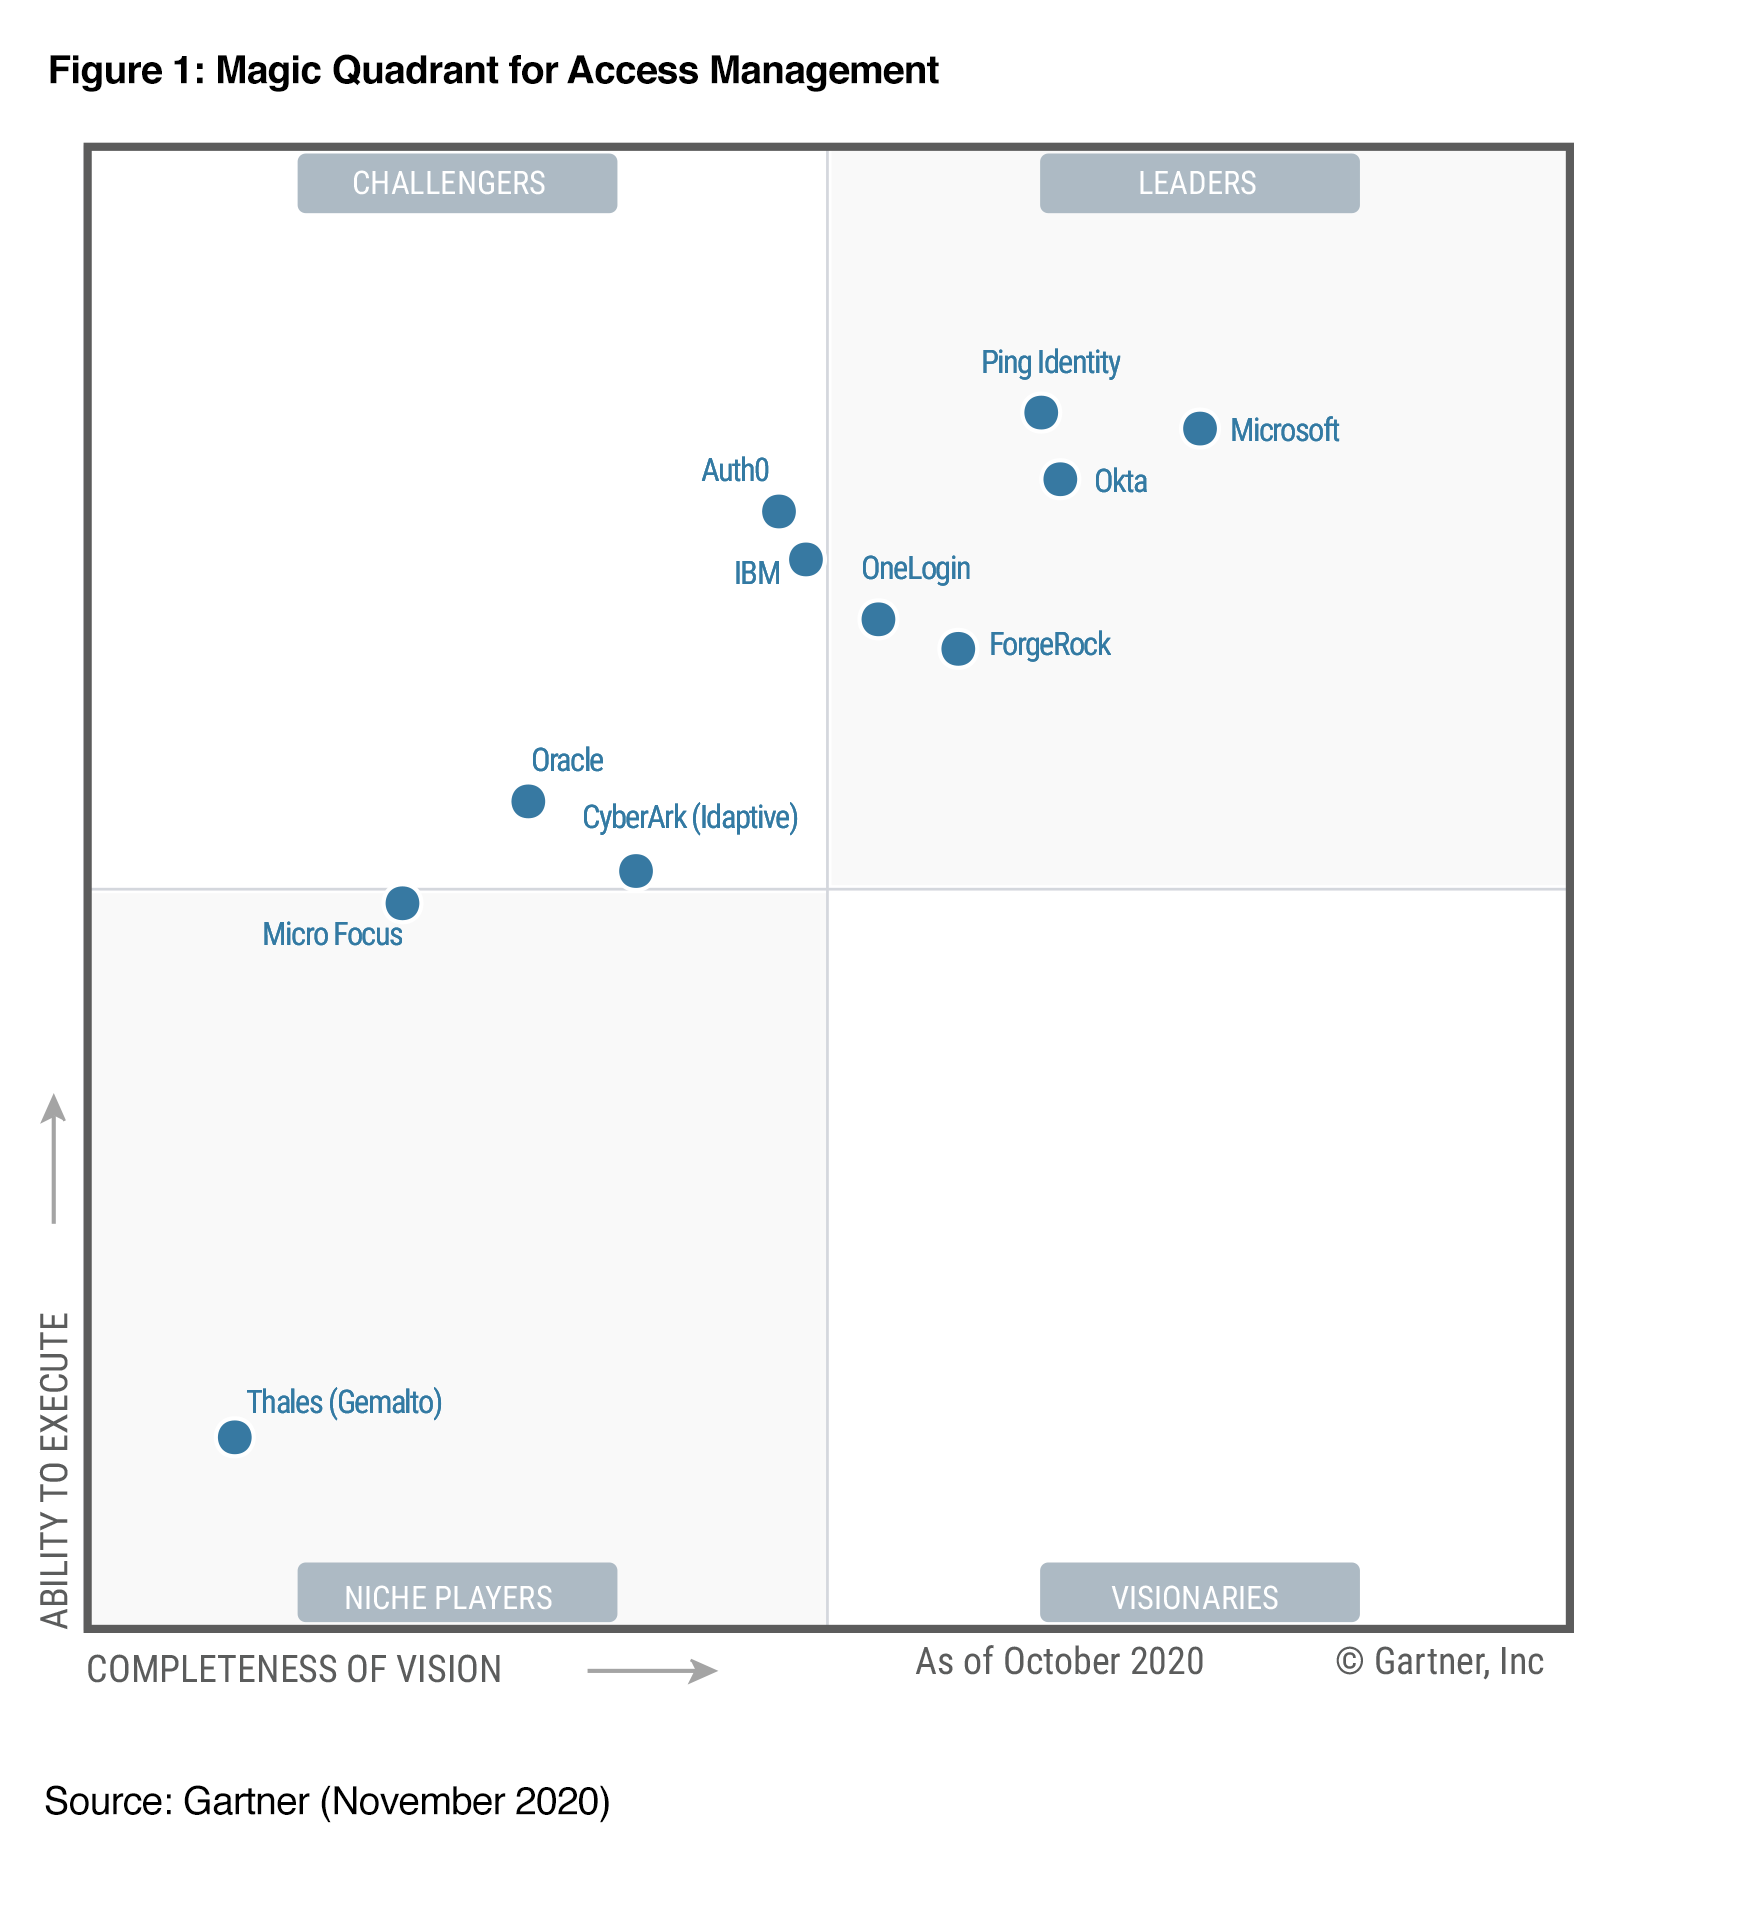 gartner mq 2020 placement of ping identity